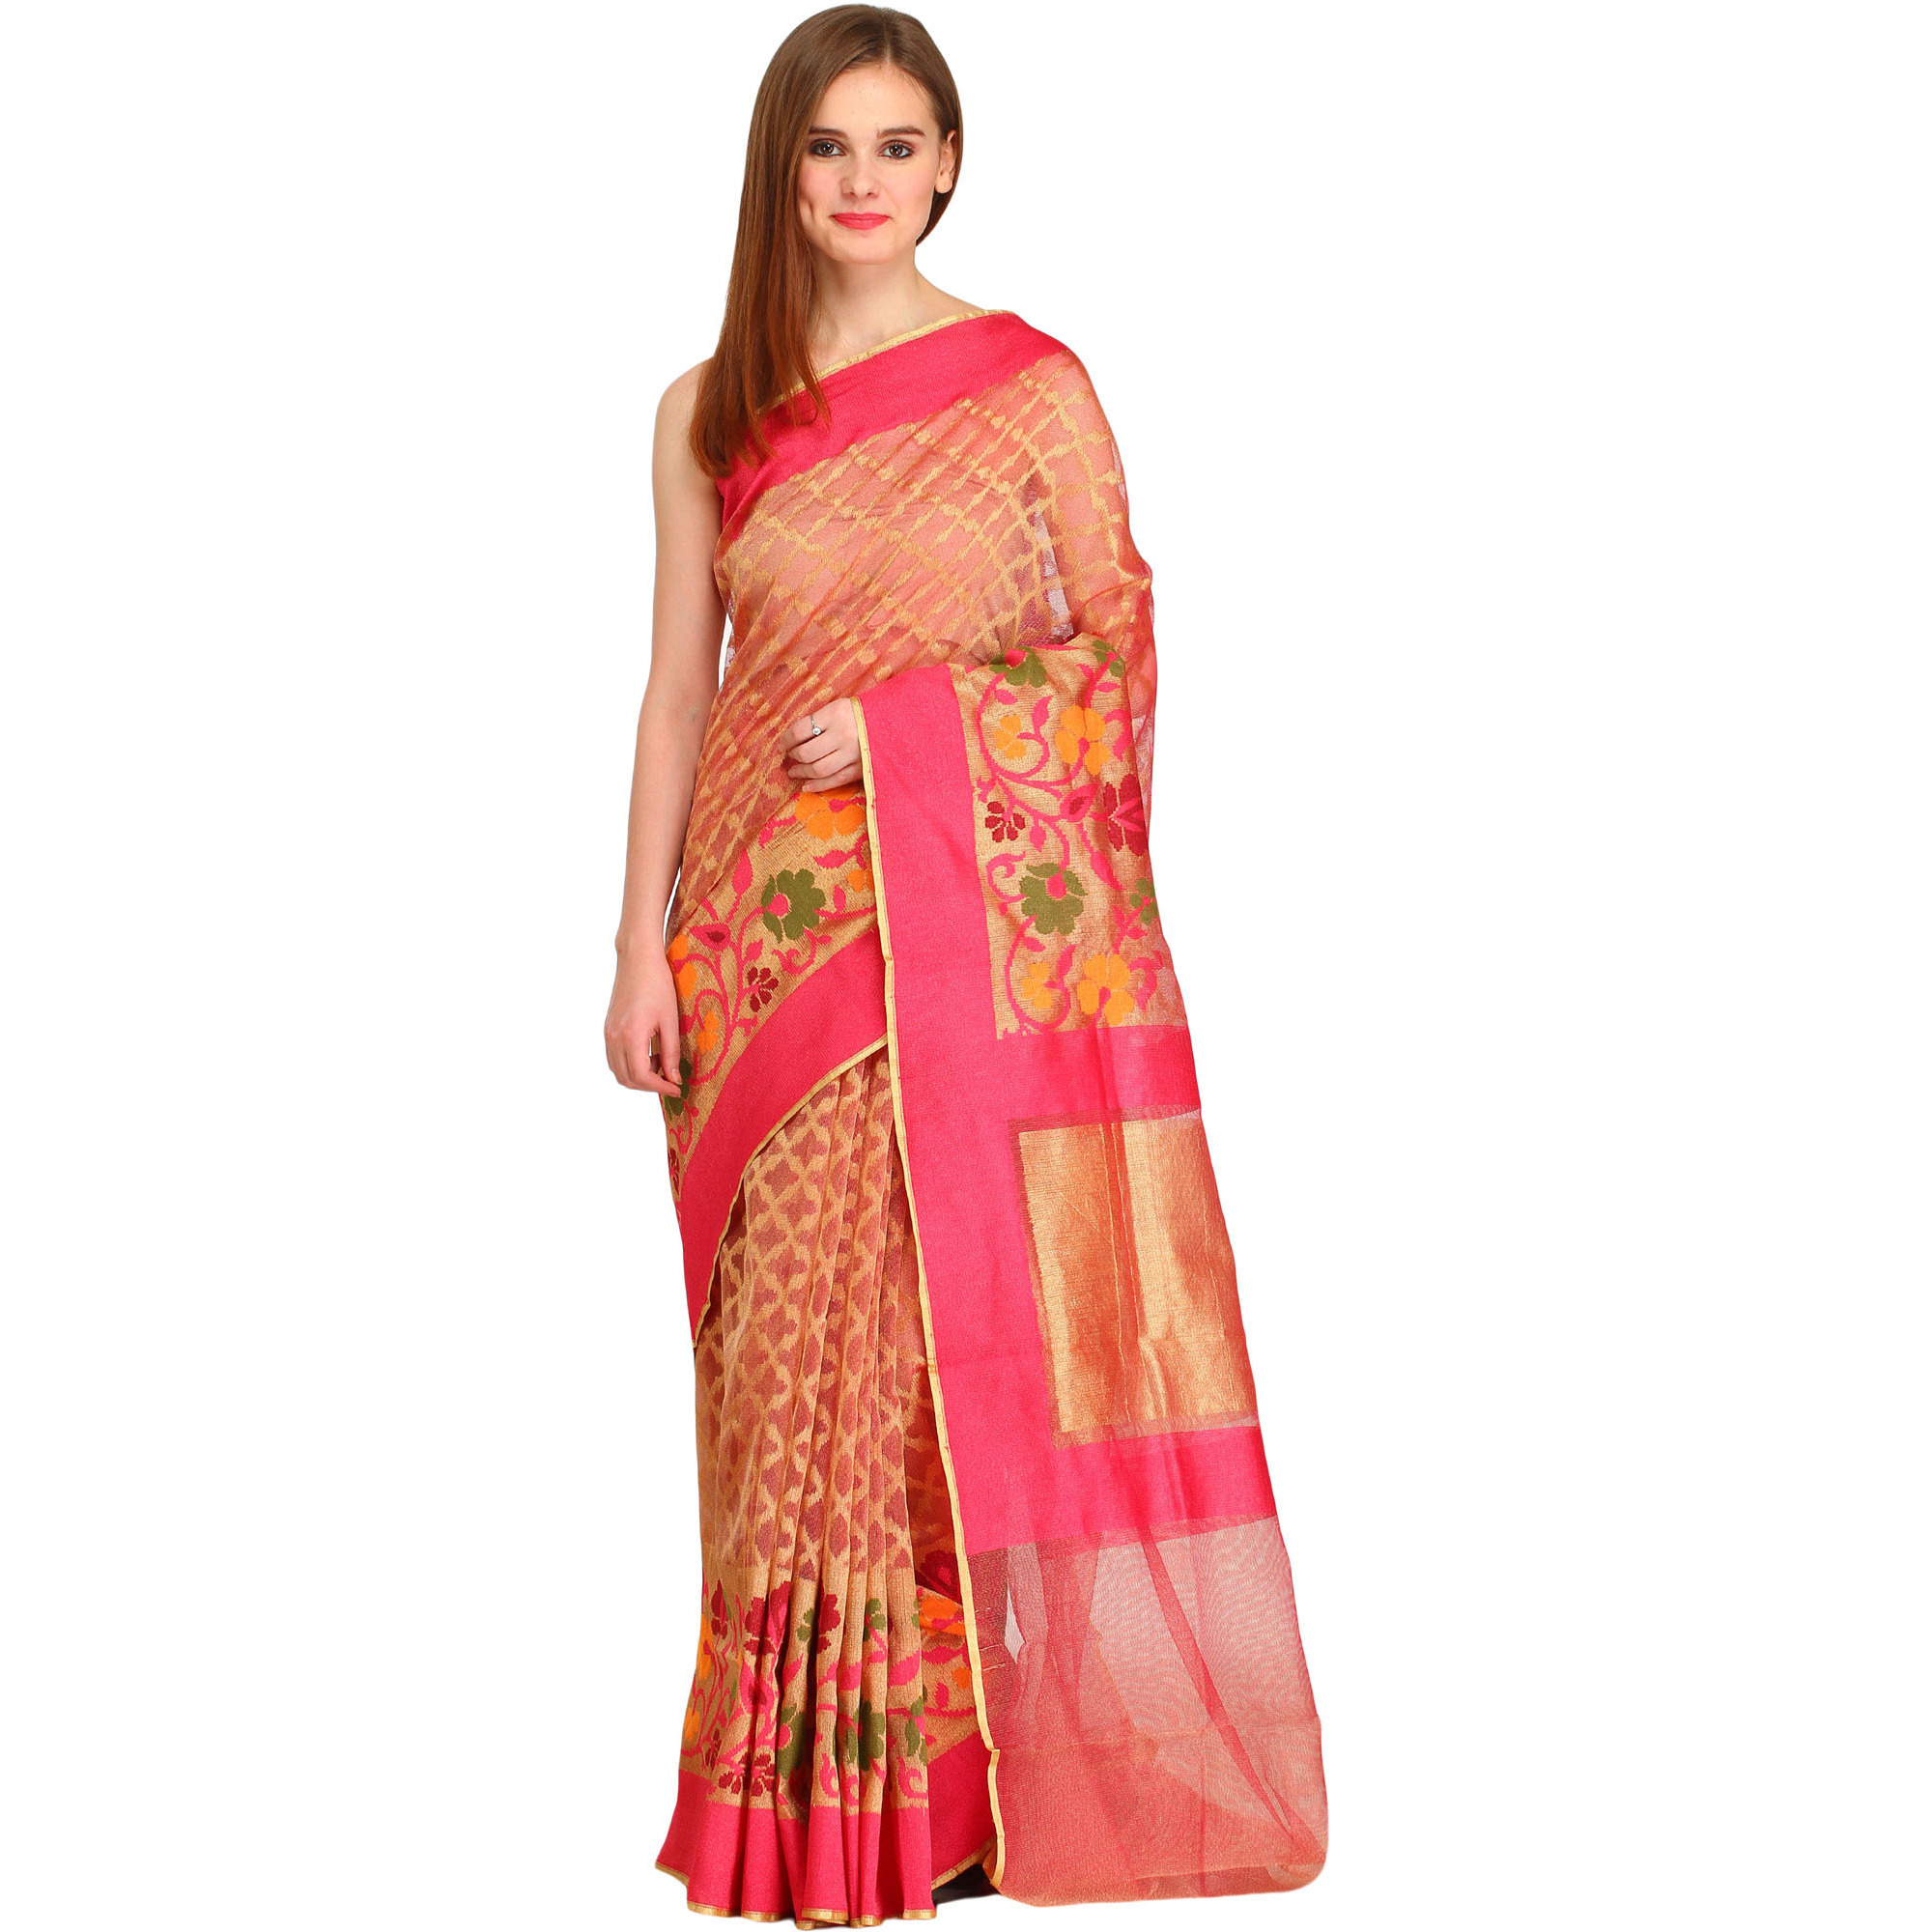 Golden and Pink Wedding Tissue Sari from Banaras with Woven Flowers on Border